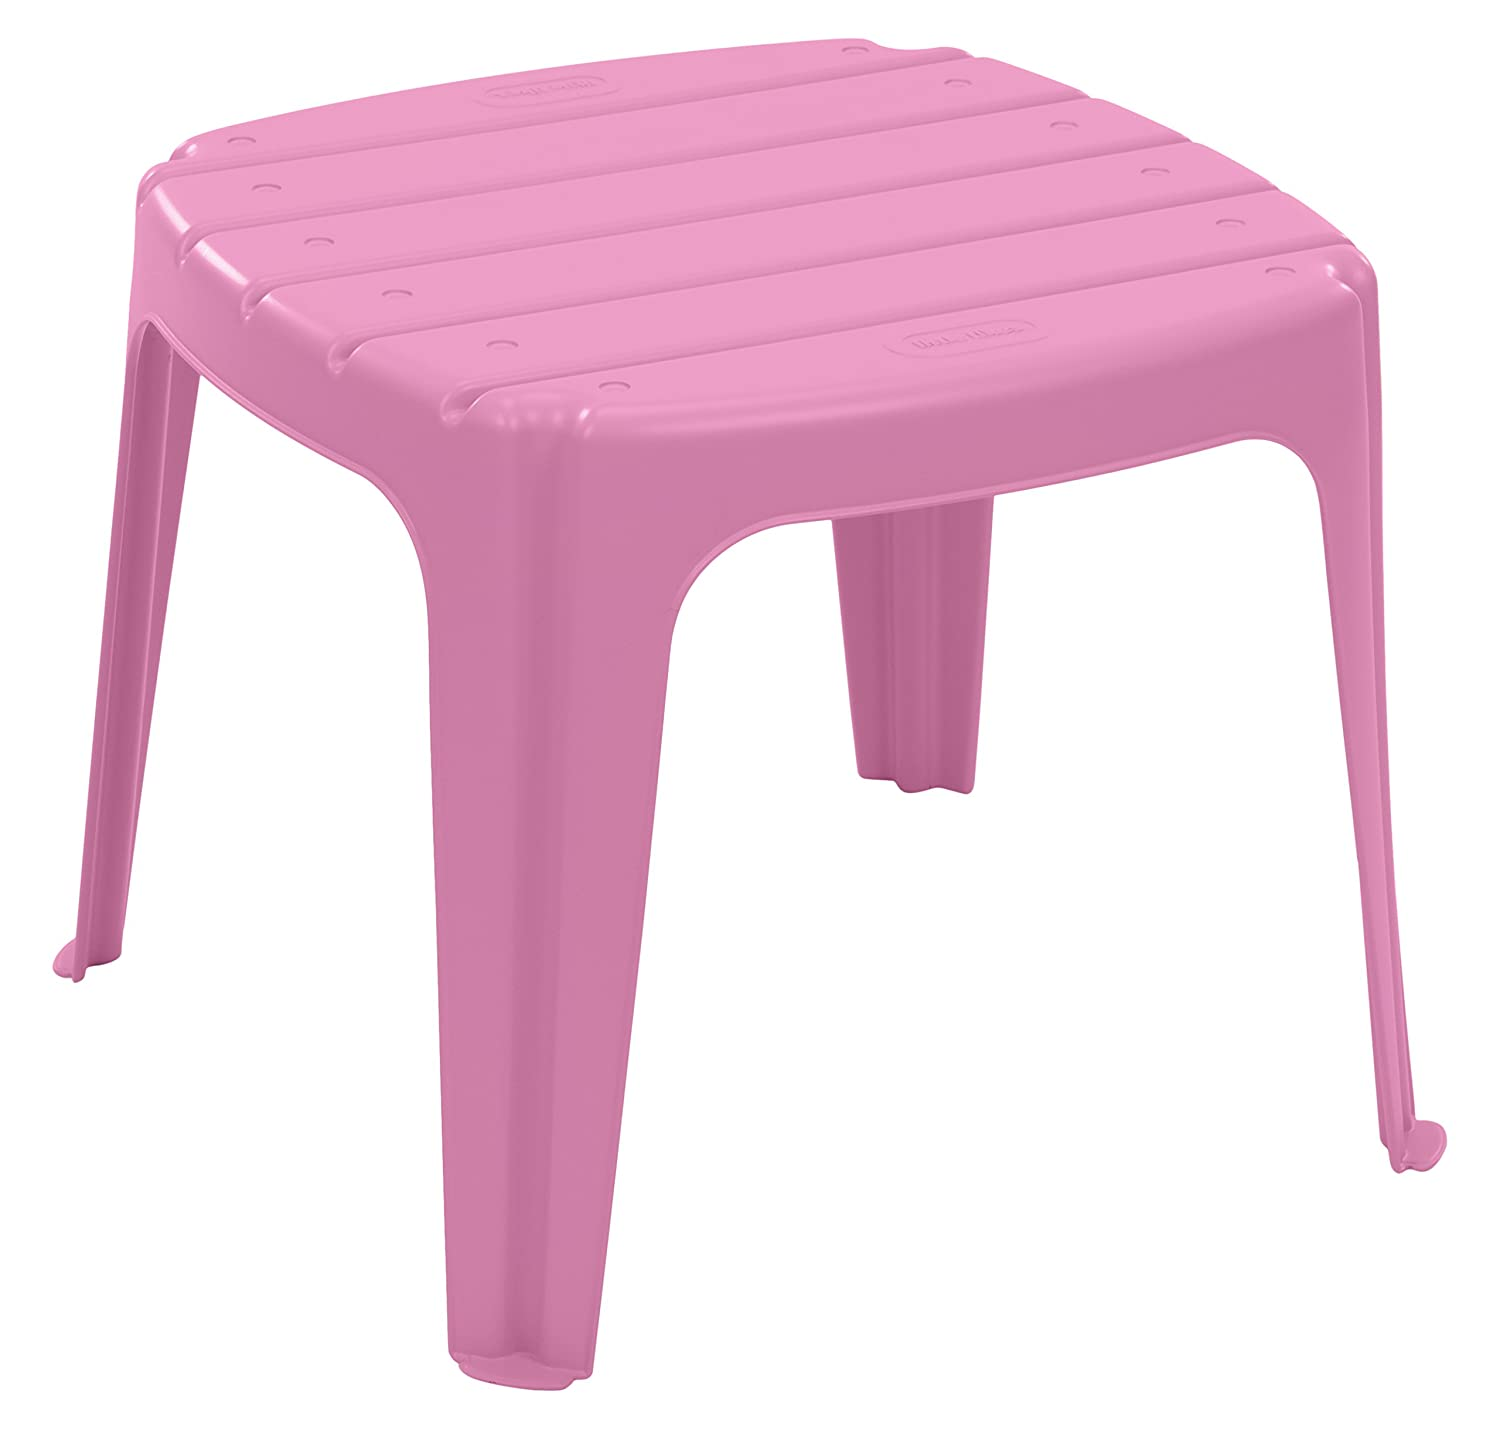 Little tikes adjustable table and chairs - Little Tikes Garden Table Pink